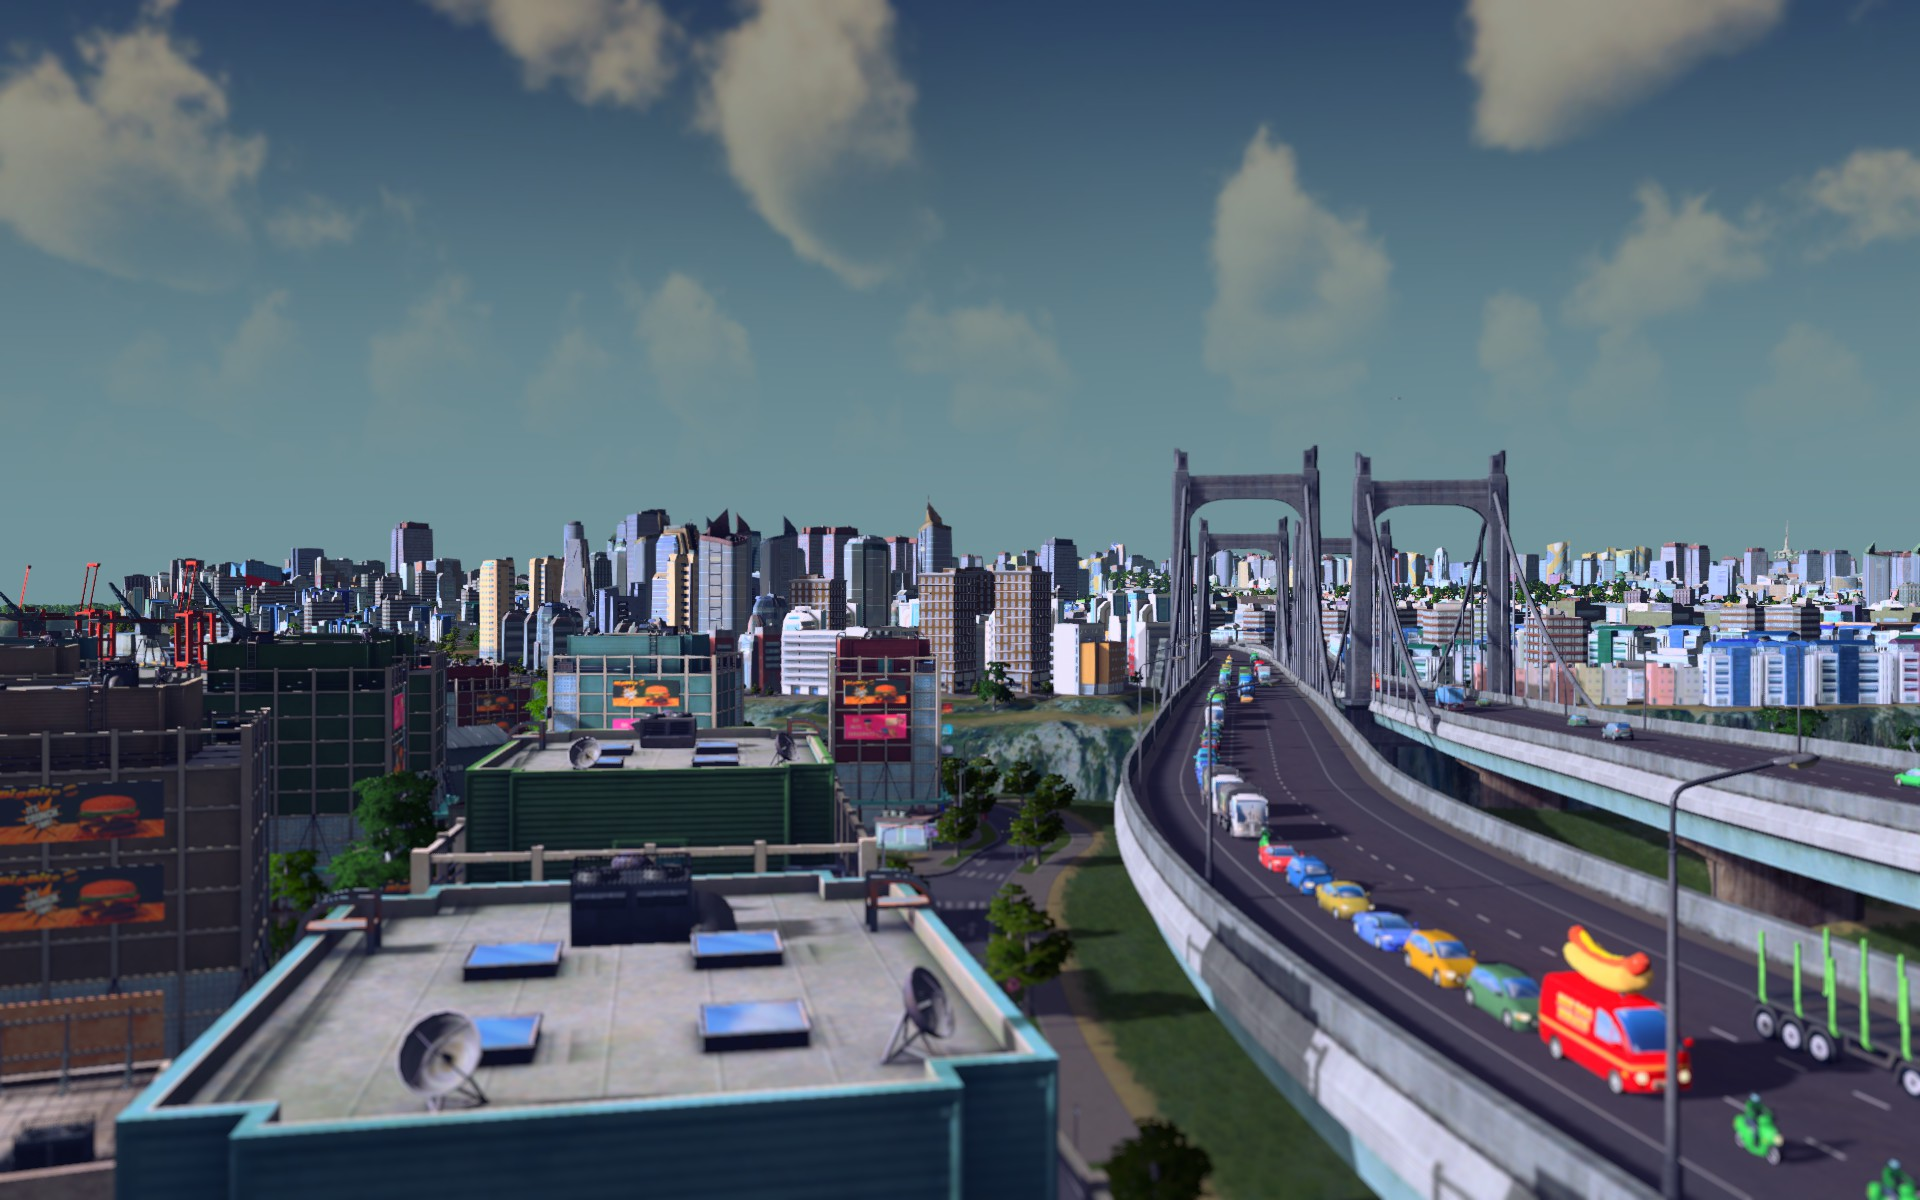 Who knew that people just wanted to build cities in a city-planning simulation?